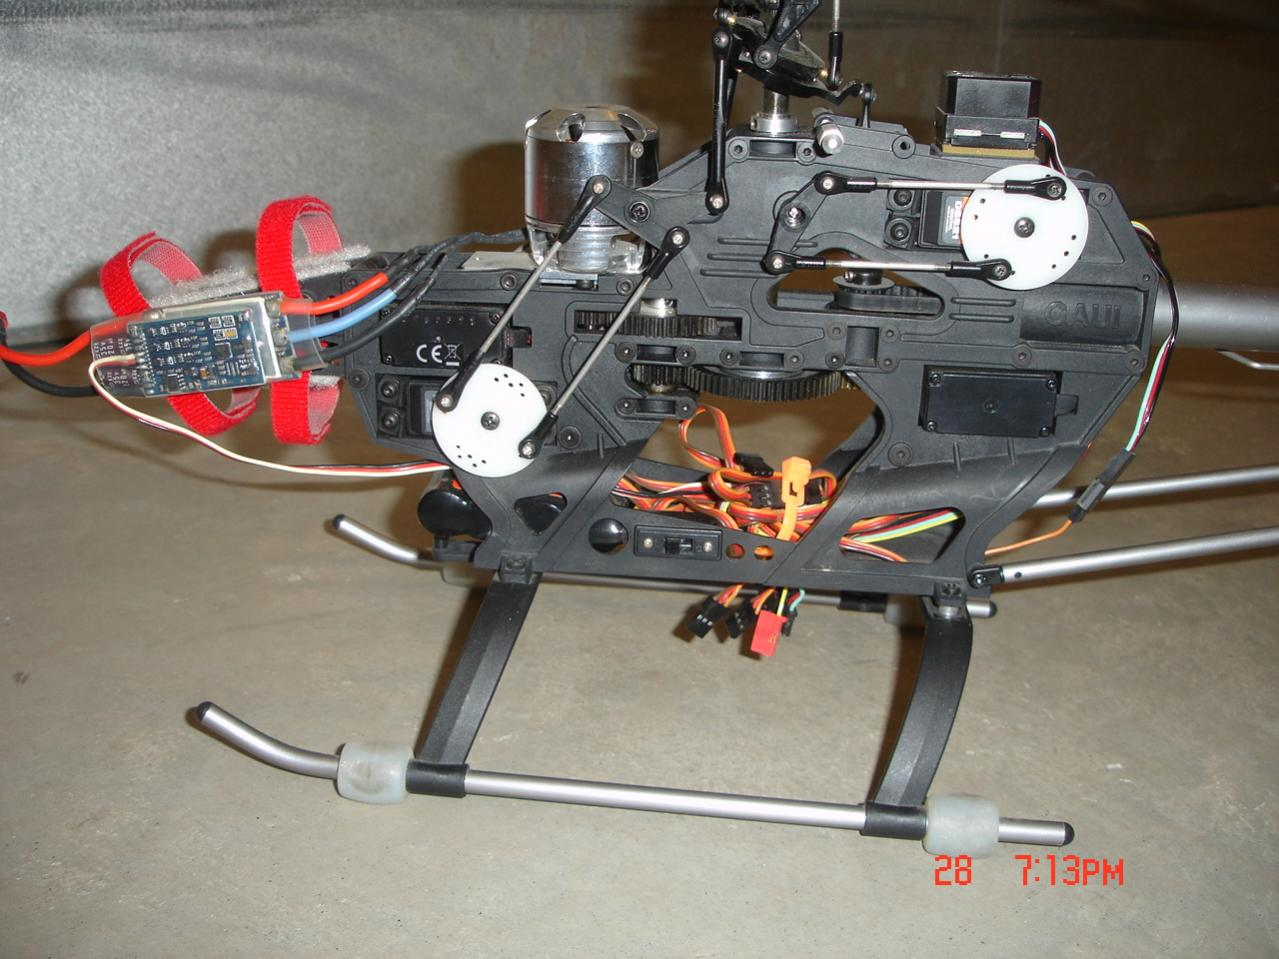 gaui rc helicopters with 477461 Gaui Hurricane 550 W Electronics on Sab Goblin 700 Speed Gelb Inkl  Speed Rotorblaette moreover Sab Goblin 570 Inkl  Rotorblaetter Gelb   Rot further 5755 X3 Tail Rotor Control Arm Assembly also Gaui X7 Spares besides 6559 Sp Oxy3 001 Oxy3 Carbon Steel Main Shaft 2pc.